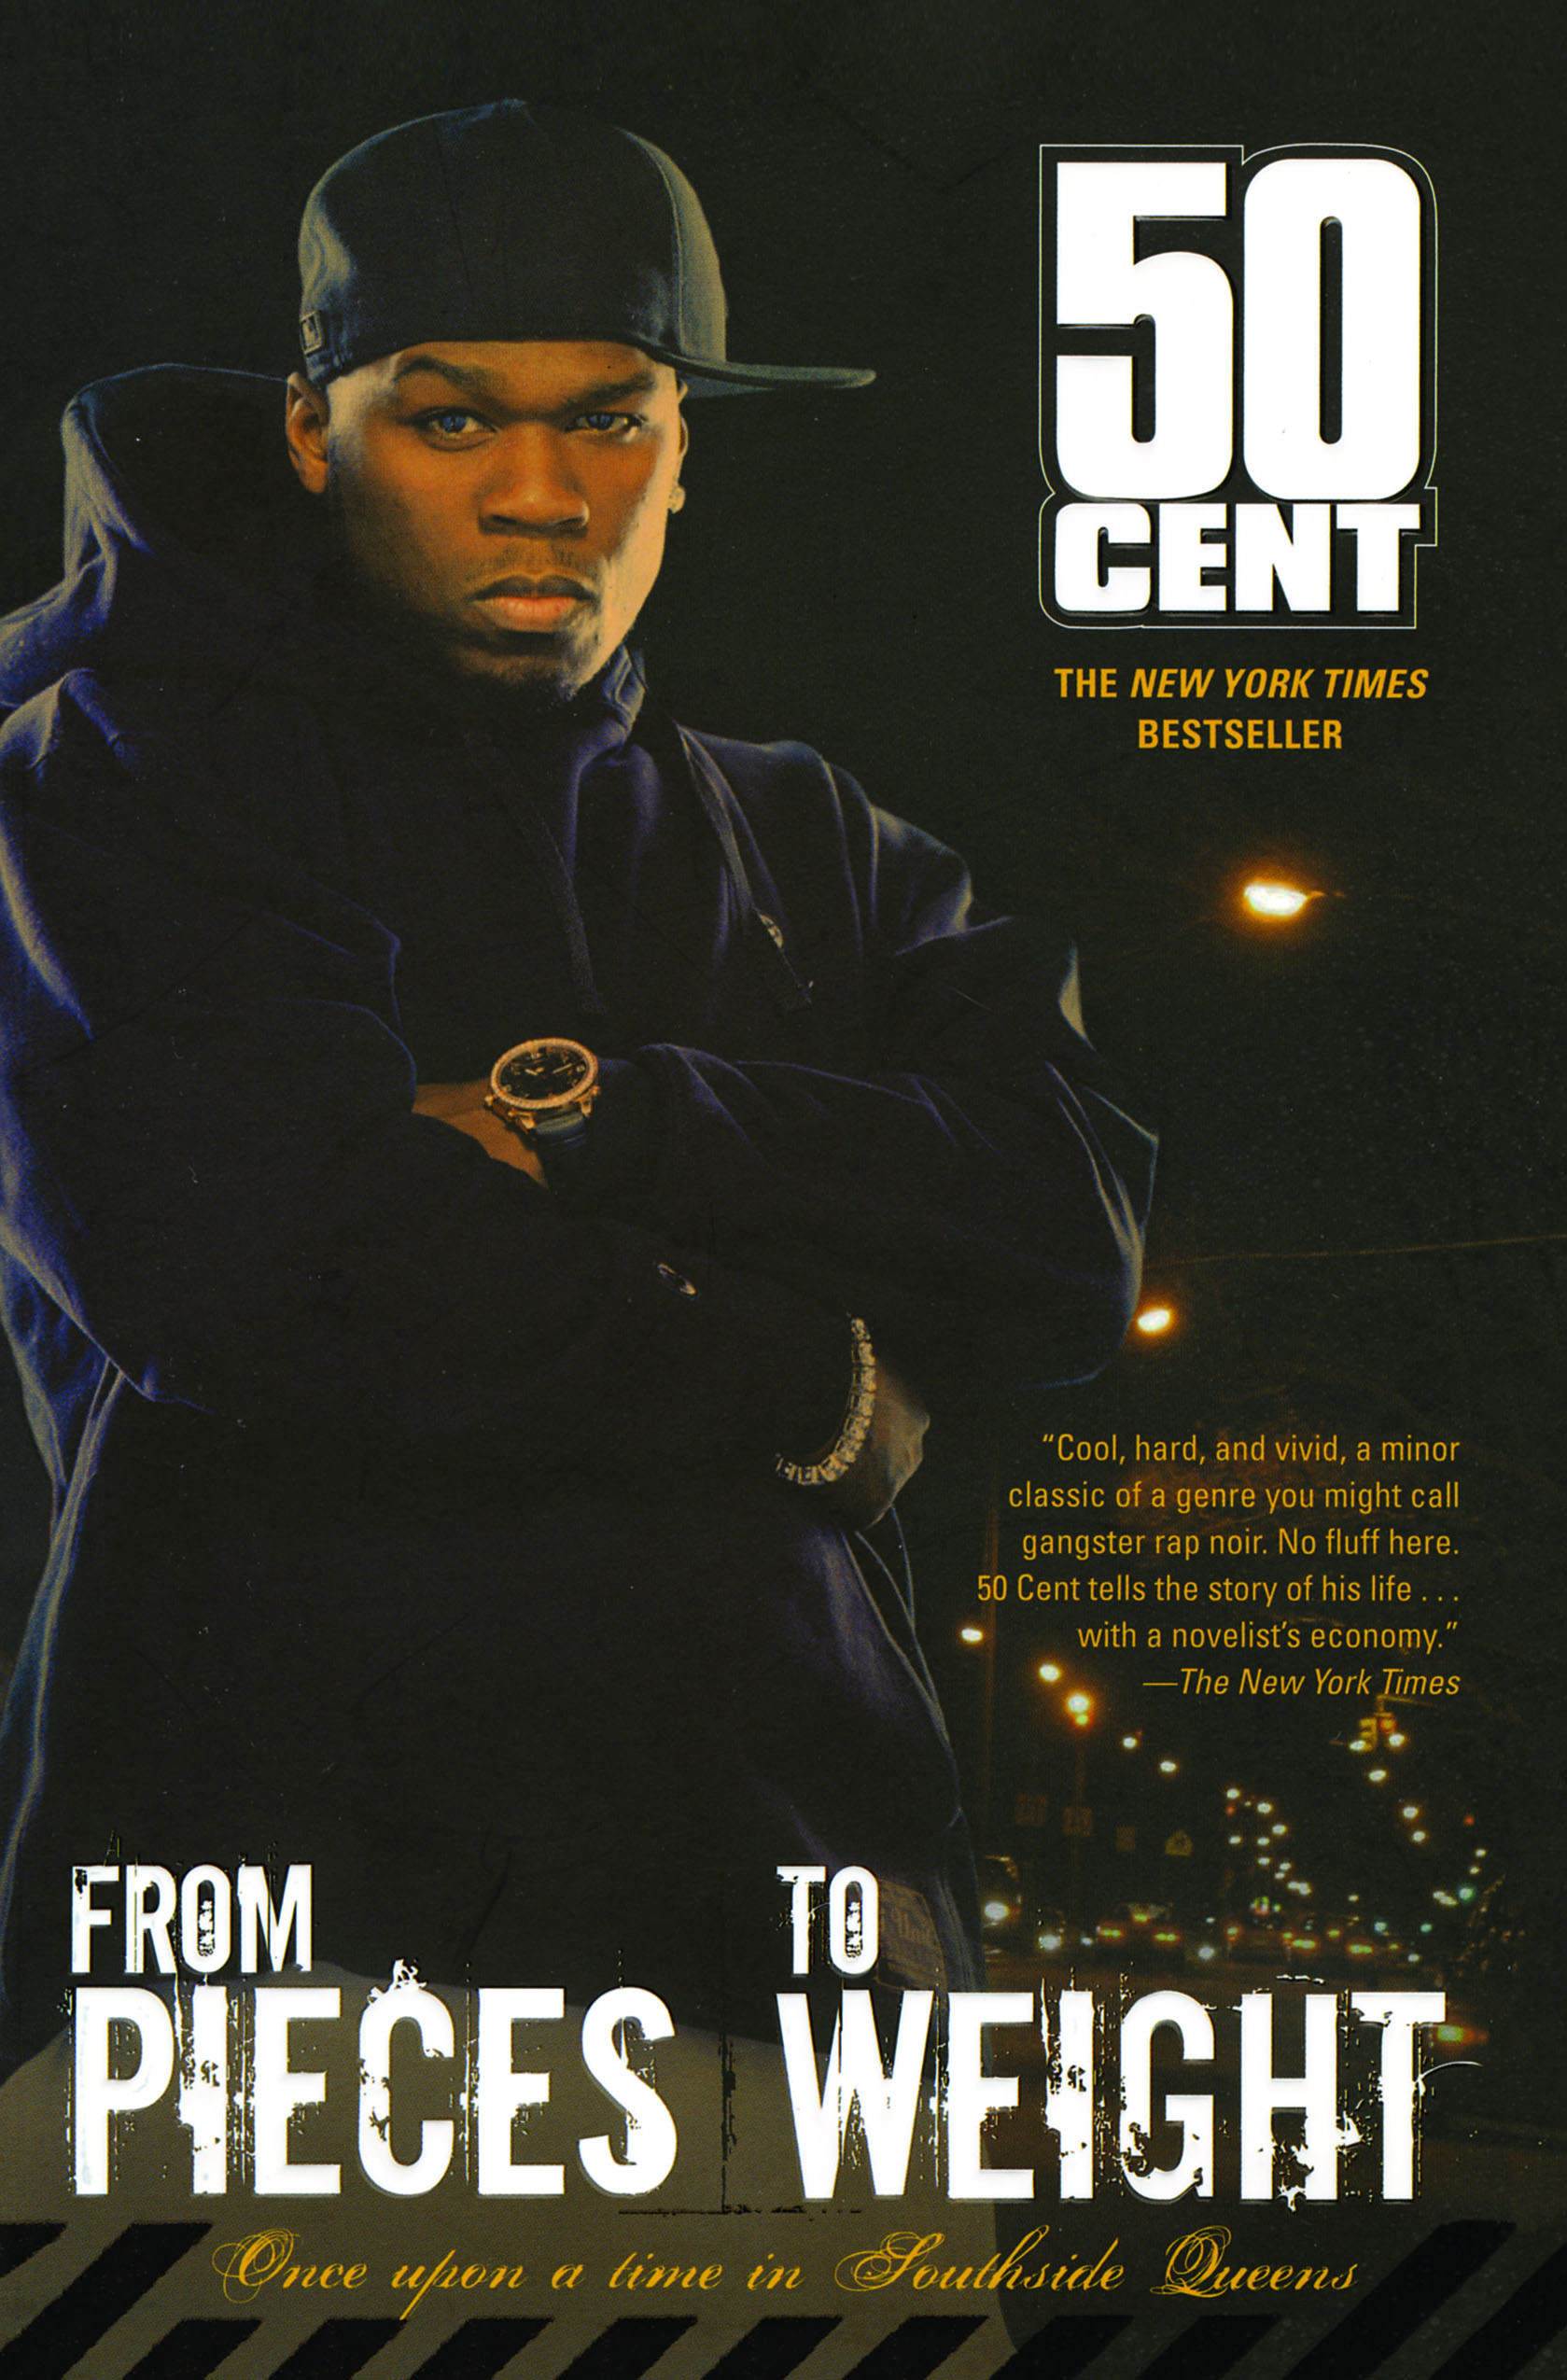 From Pieces to Weight | Book by 50 Cent, Kris Ex | Official